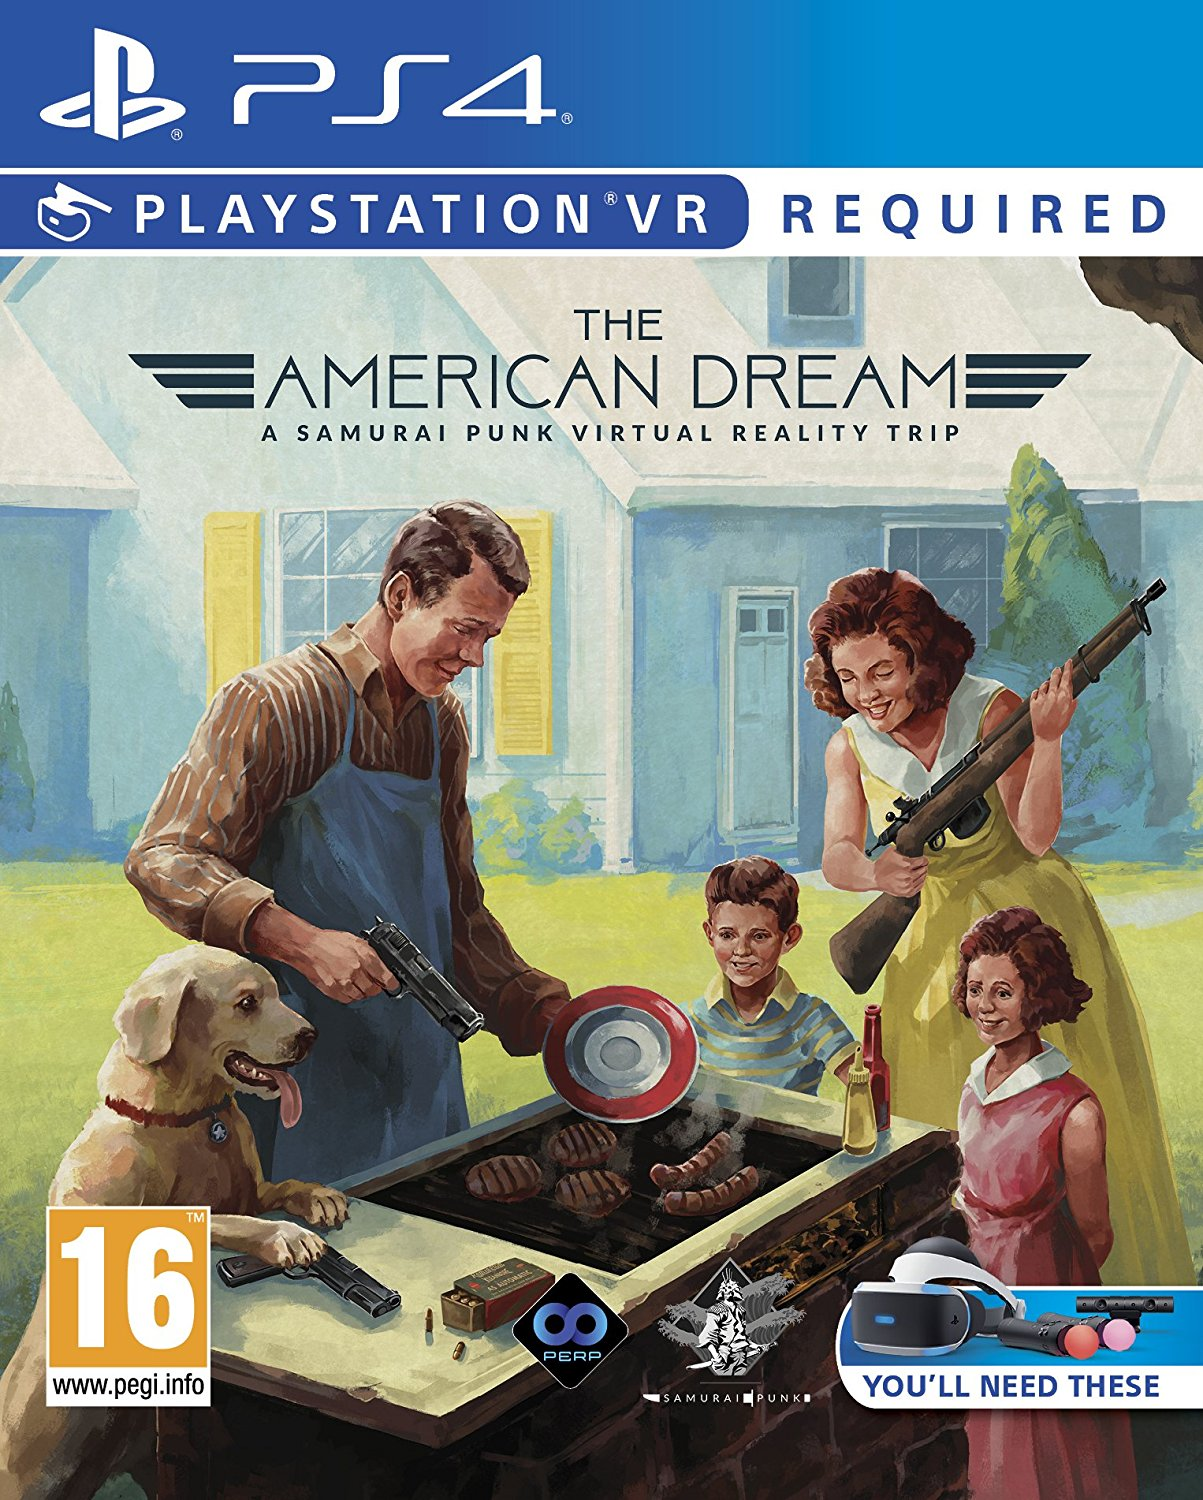 The American Dream - PlayStation VR